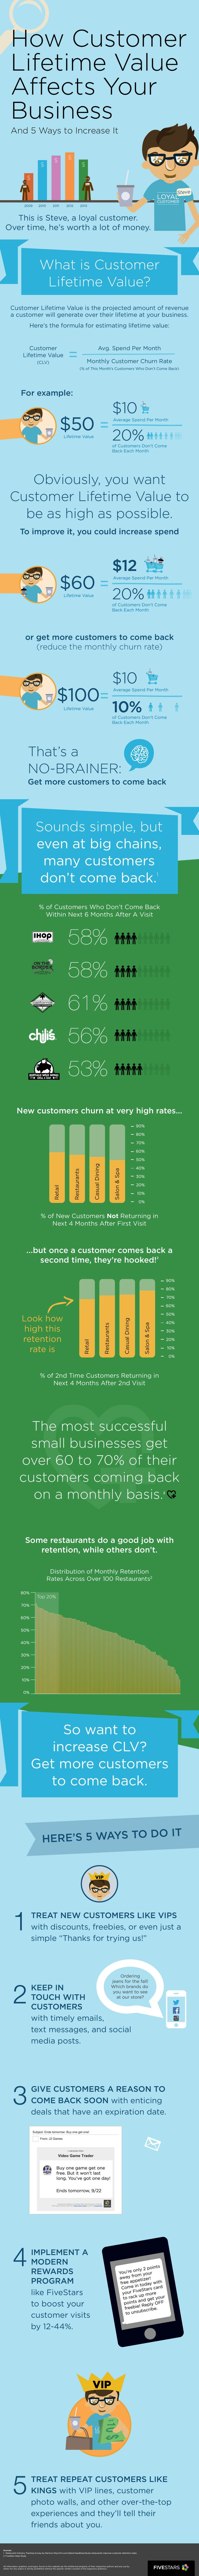 How Customer Lifetime Value Affects Your Business and 5 Ways to Increase It #infographic http://arcreactions.com/